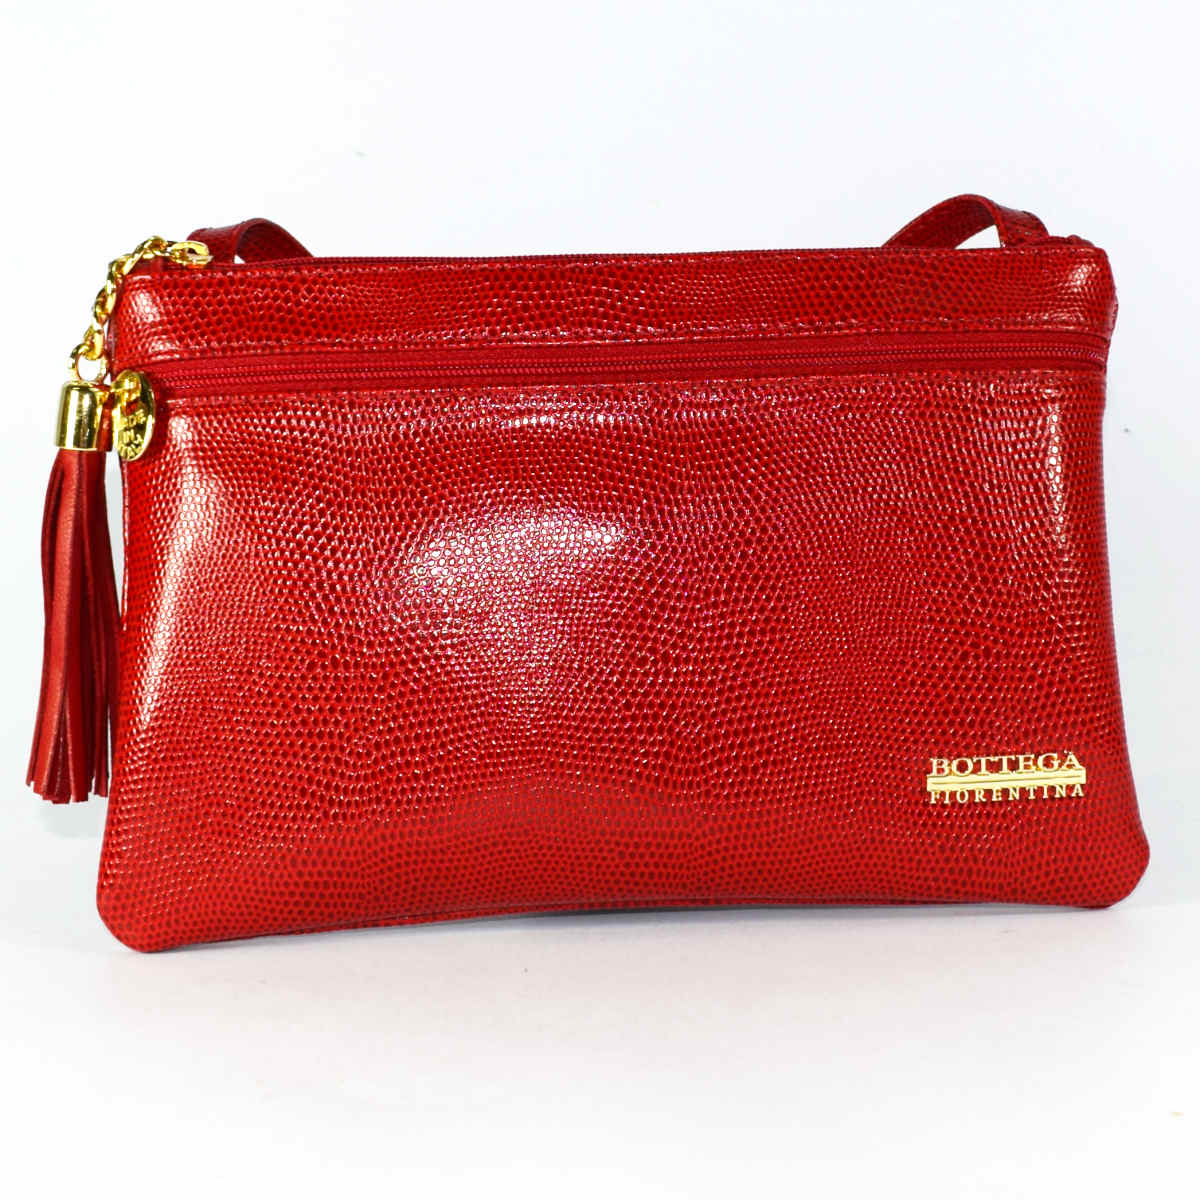 1773 RECTANGULAR SHOULDER BAG by Bottega Fiorentina